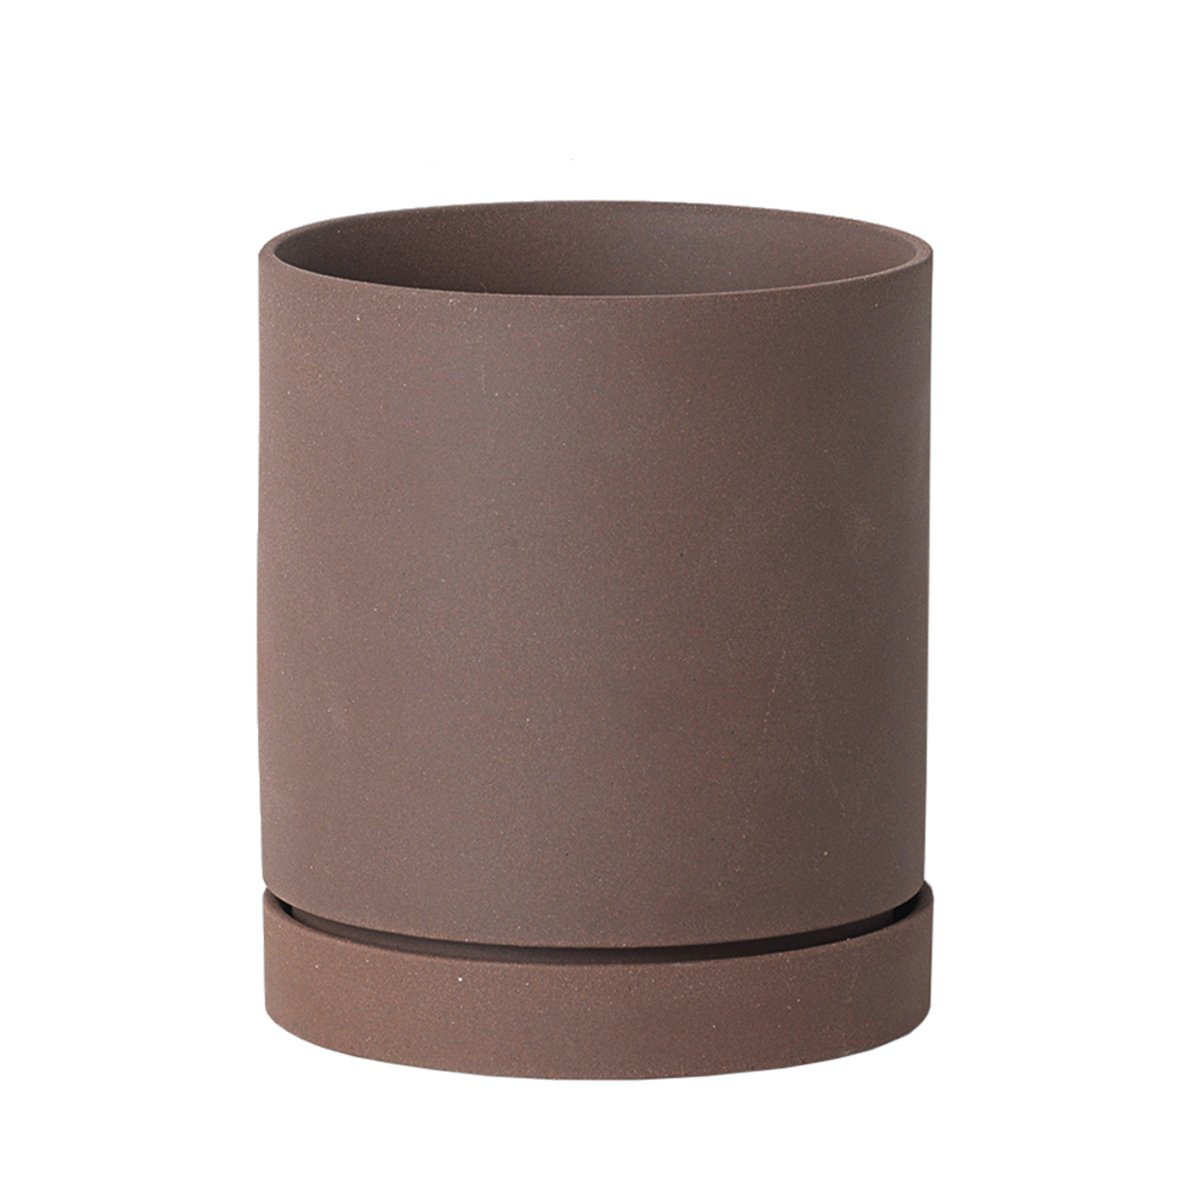 Ferm Living Sekki Pot Rust - Medium